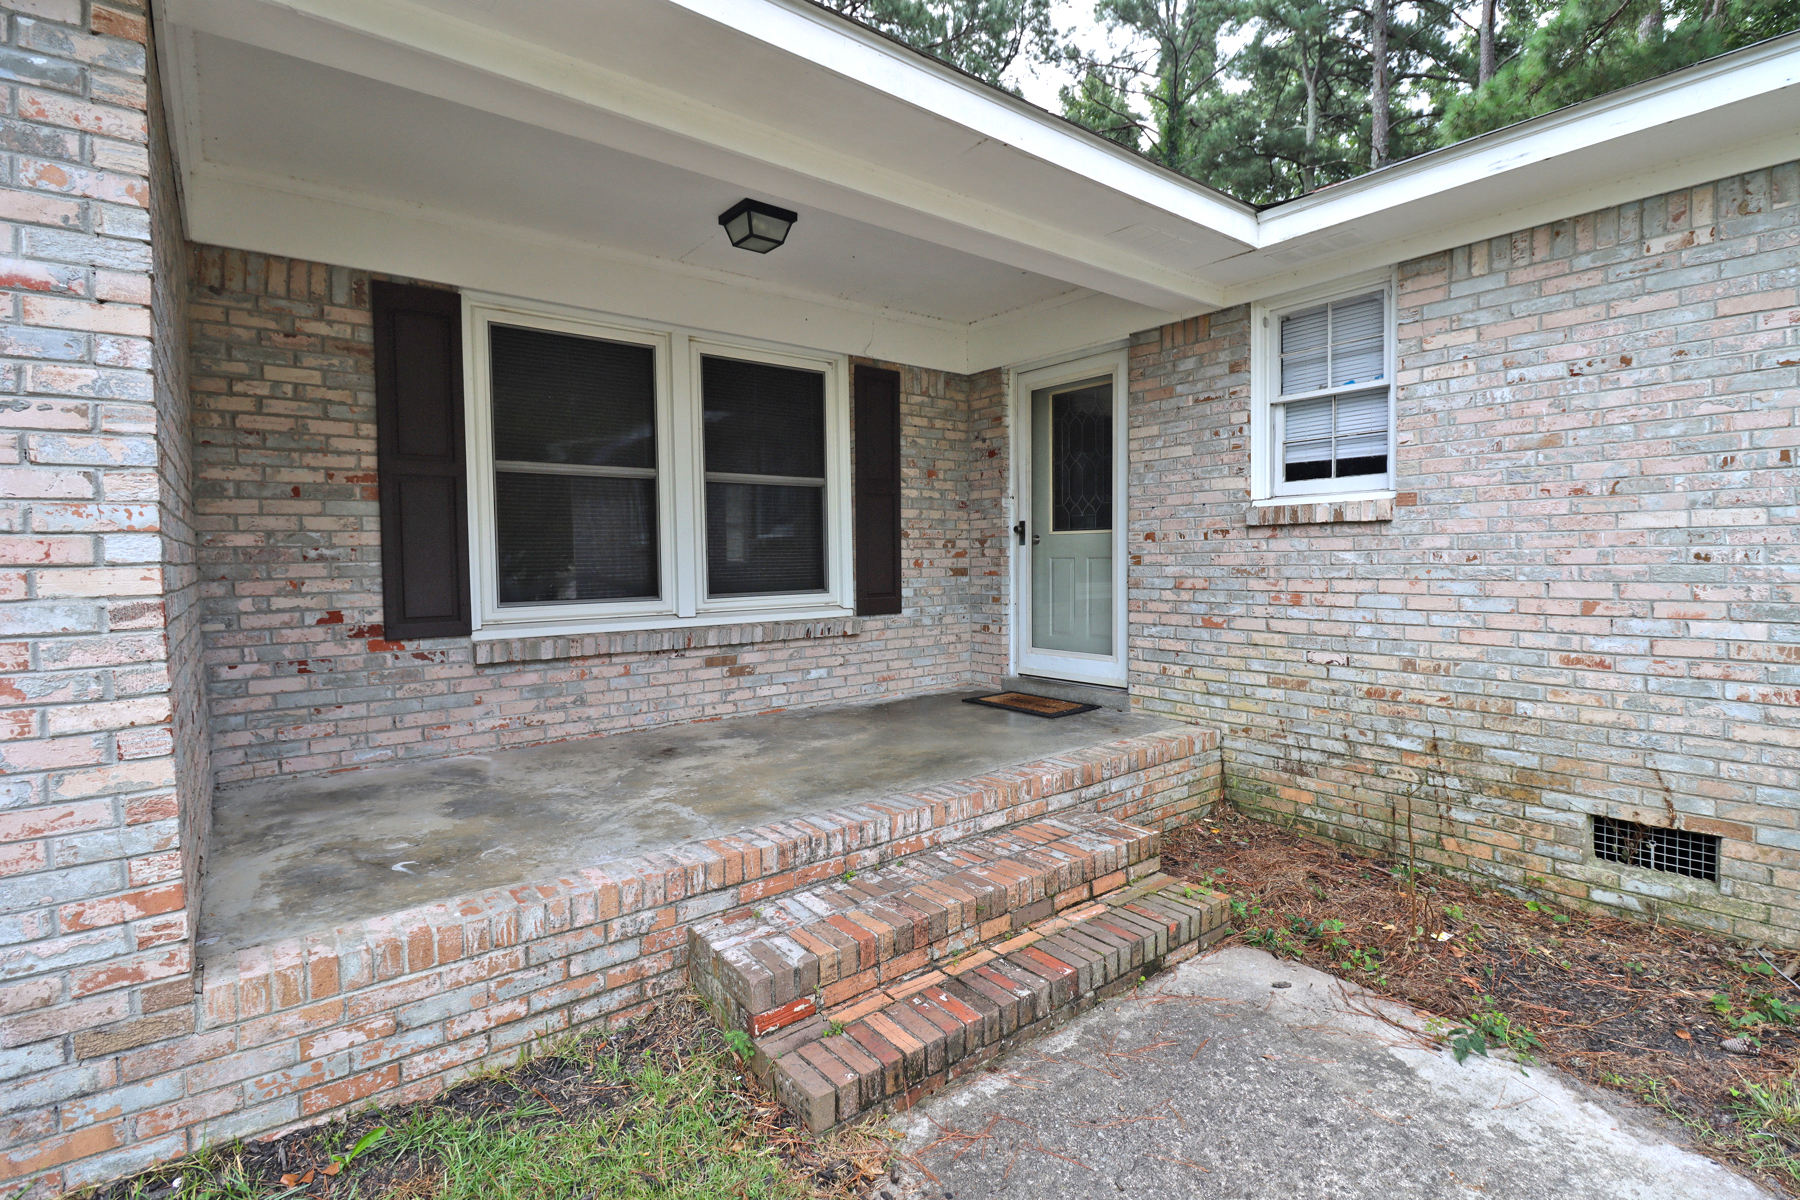 10 Coatesdale Circle, Columbia, South Carolina 29209, 3 Bedrooms Bedrooms, ,2 BathroomsBathrooms,Home,For Rent,Coatesdale Circle,1221